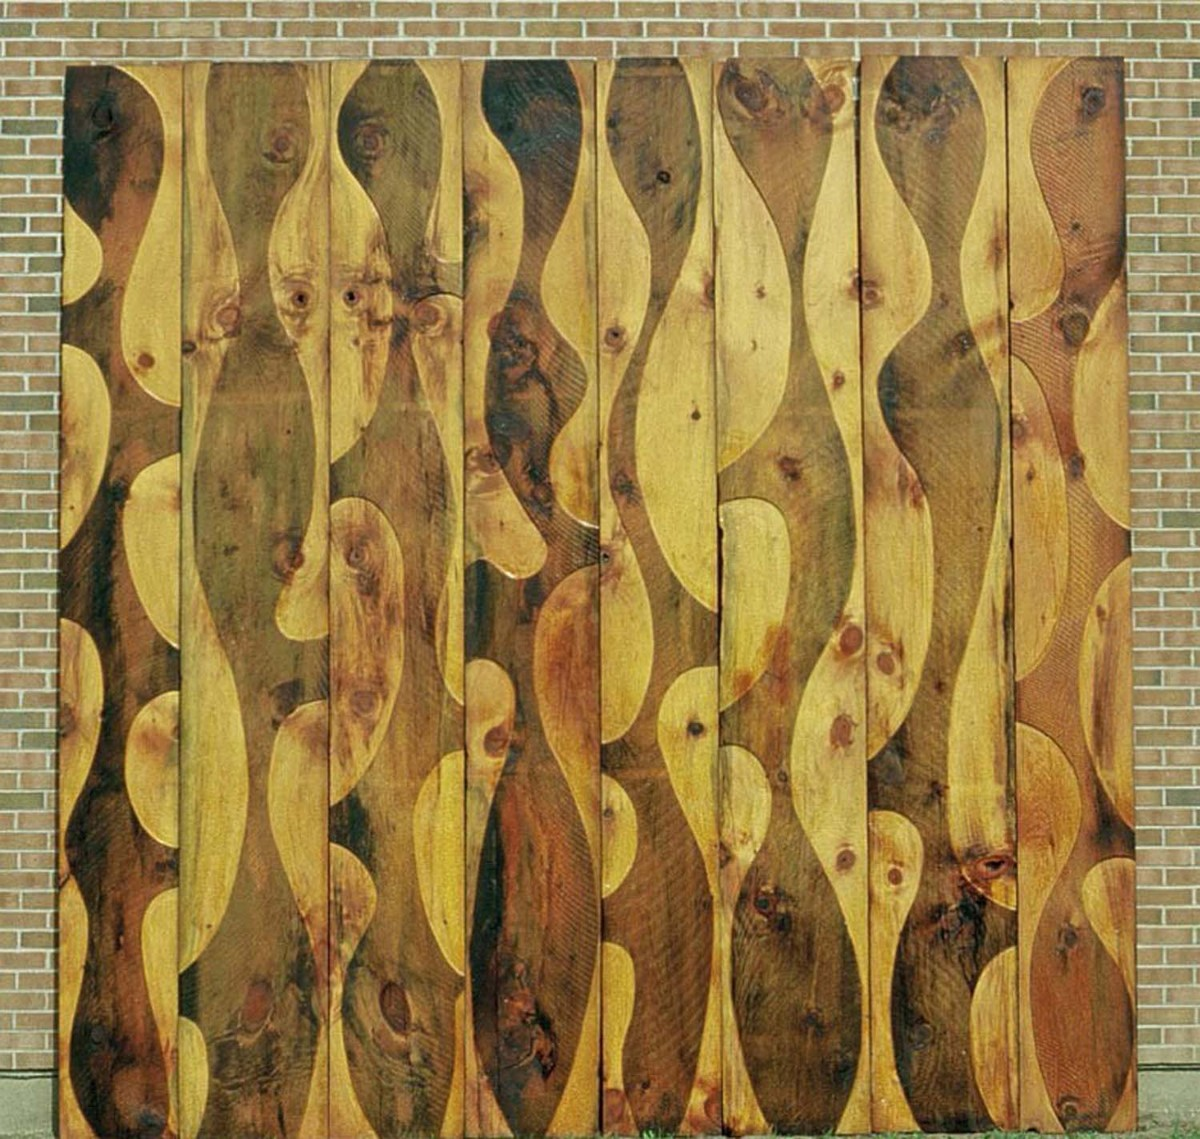 Wood Mural I (large view)